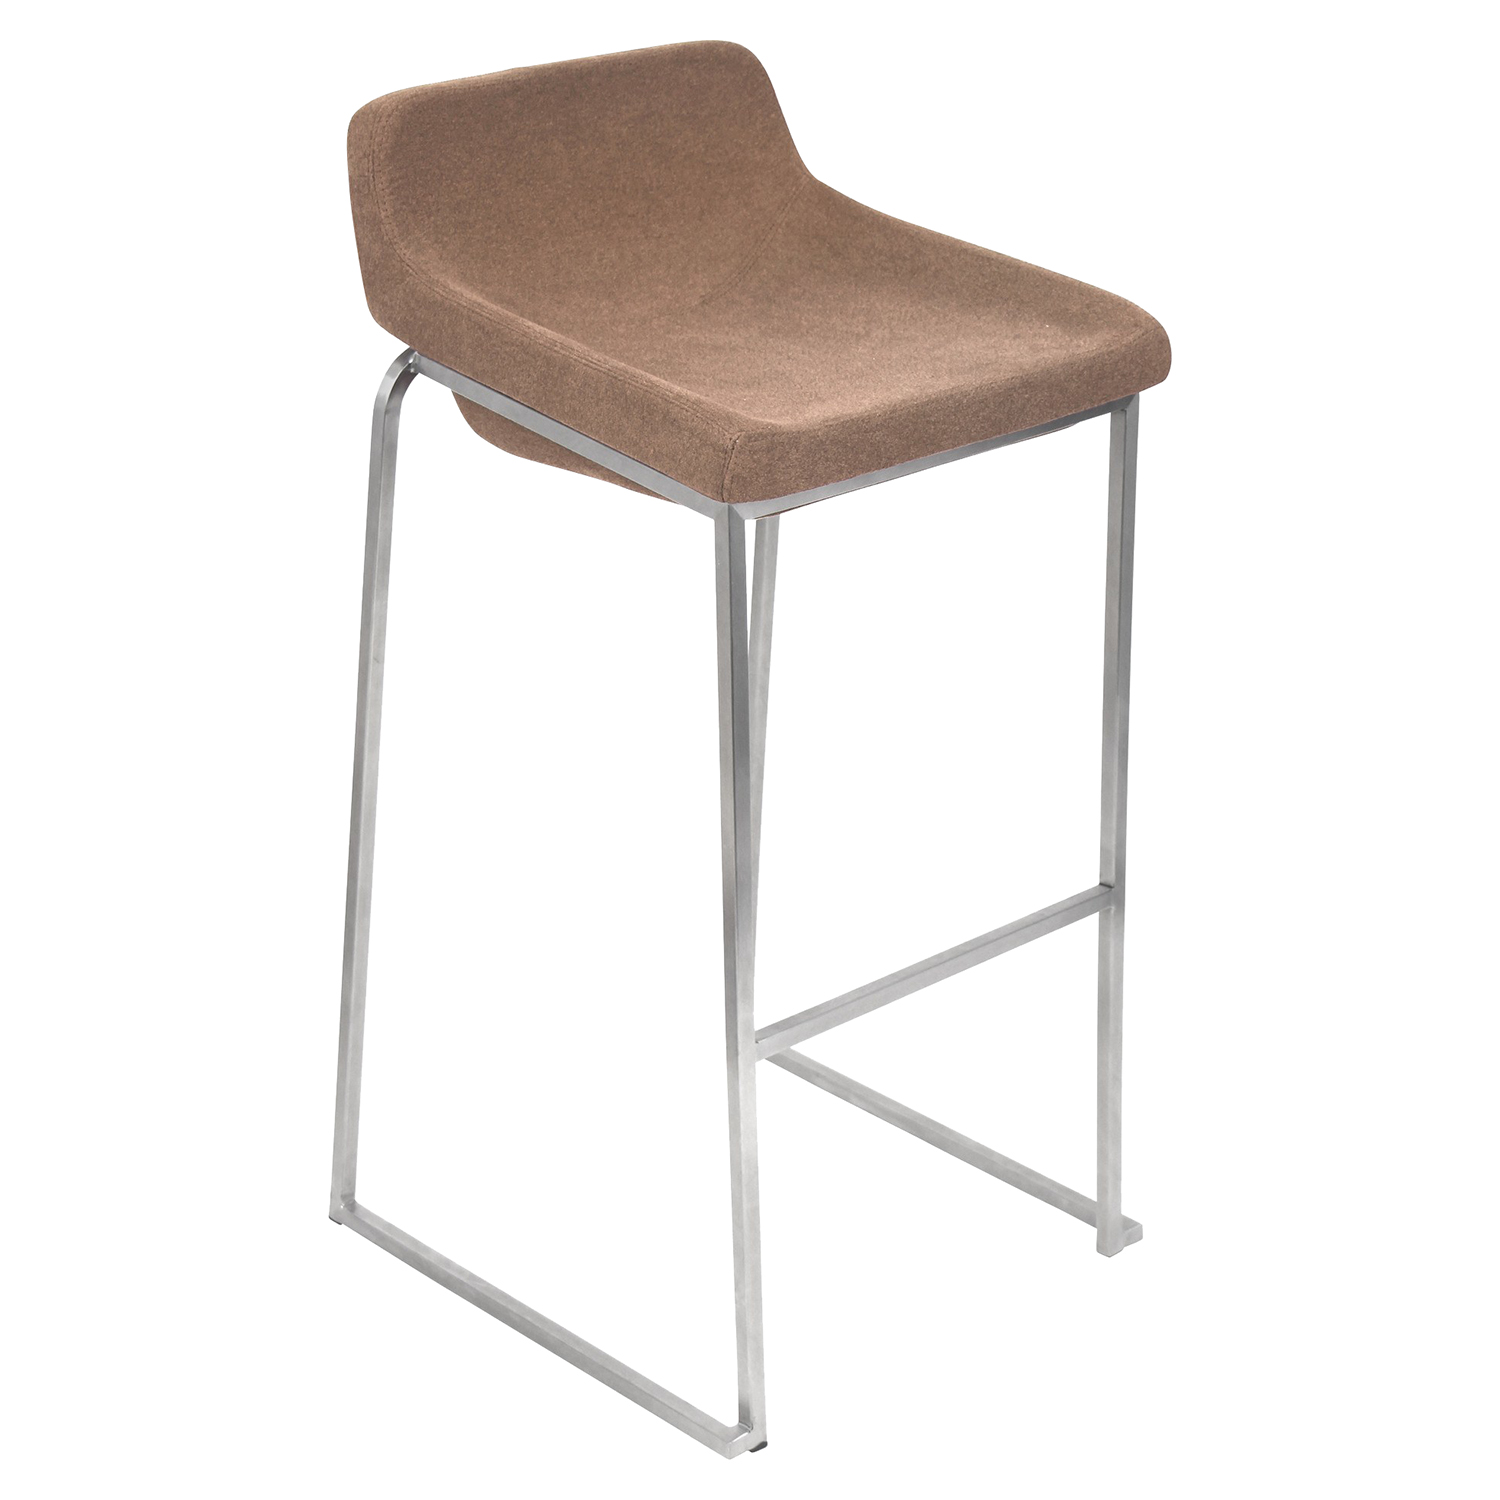 Drop-In Stackable Barstool - Light Brown (Set of 2)